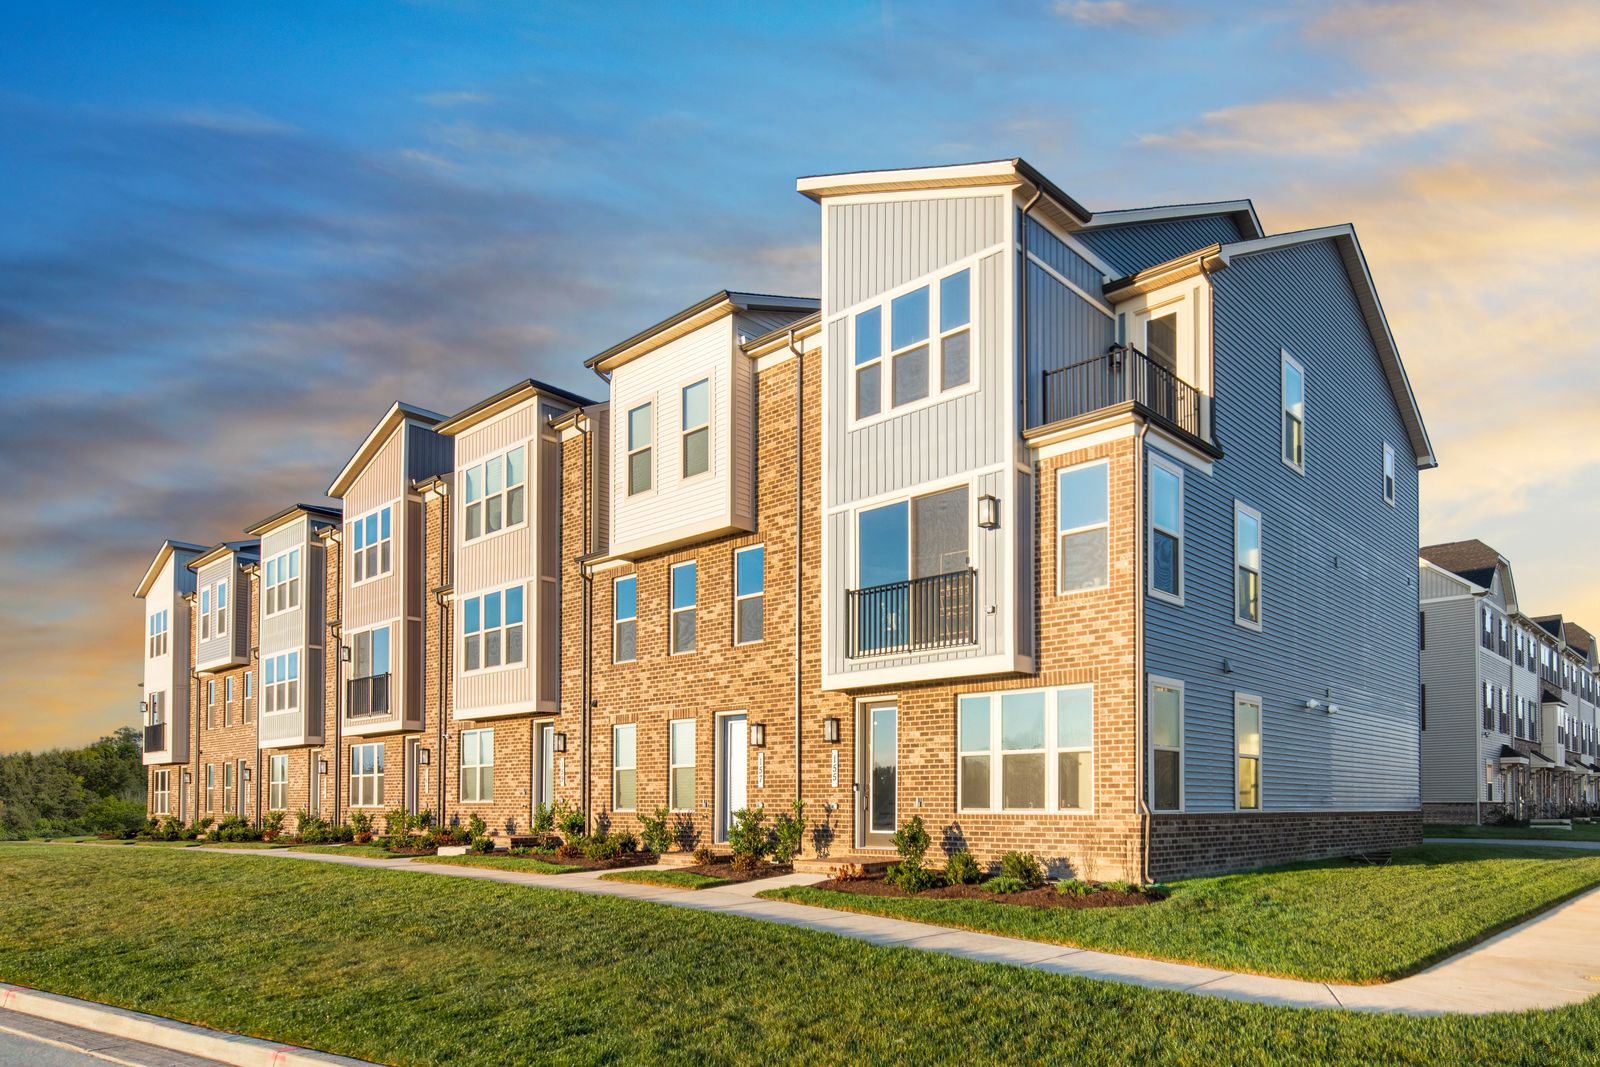 SOPHISTICATED TOWNHOMES IN SOUGHT-AFTER LAUREL:Introducing a private enclave of luxurious new townhomes in a pristine Laurel location, surrounded by trees and onsite amenities. Visits are offered by private appointment.Schedule a tour today!